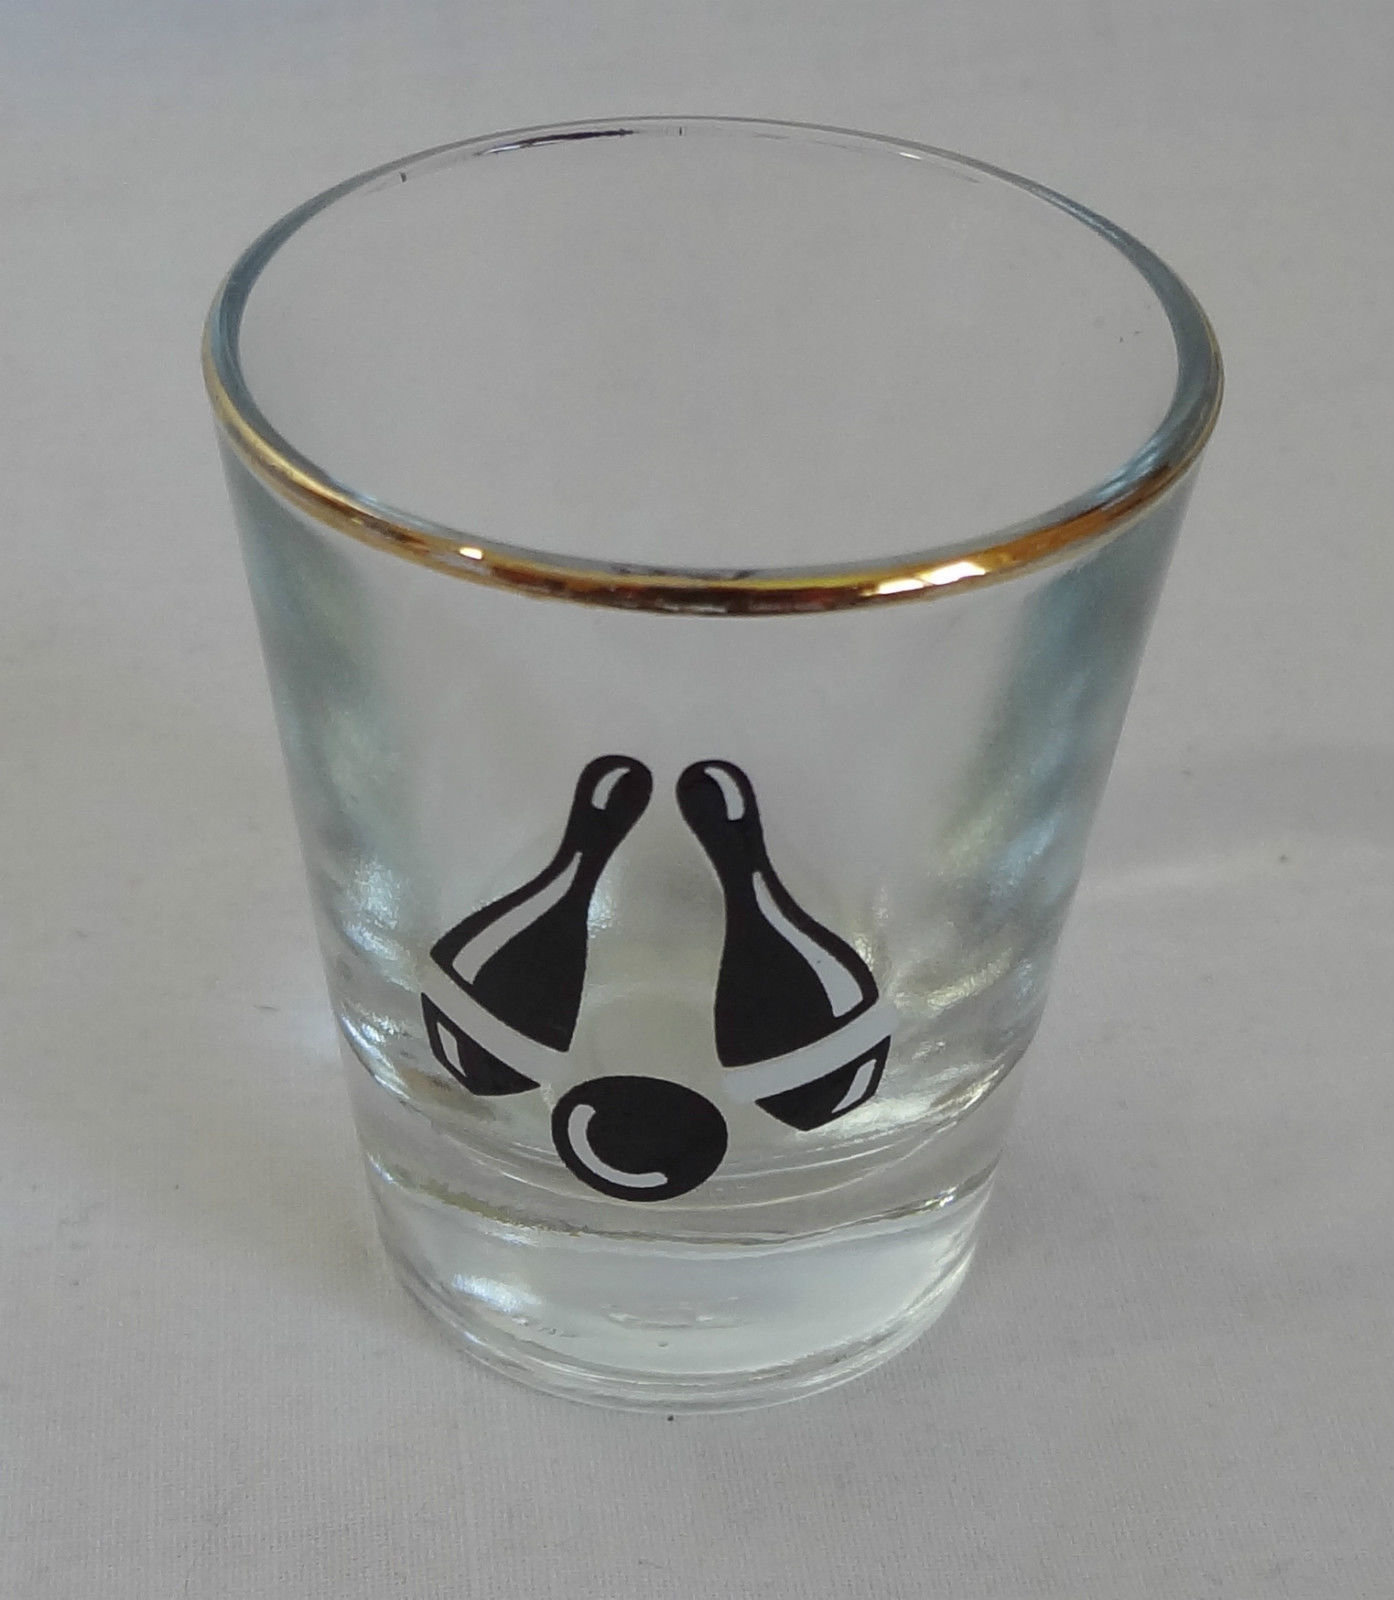 Bowling Bowlers 2 oz Gold Rimmed Barware Shot Glass